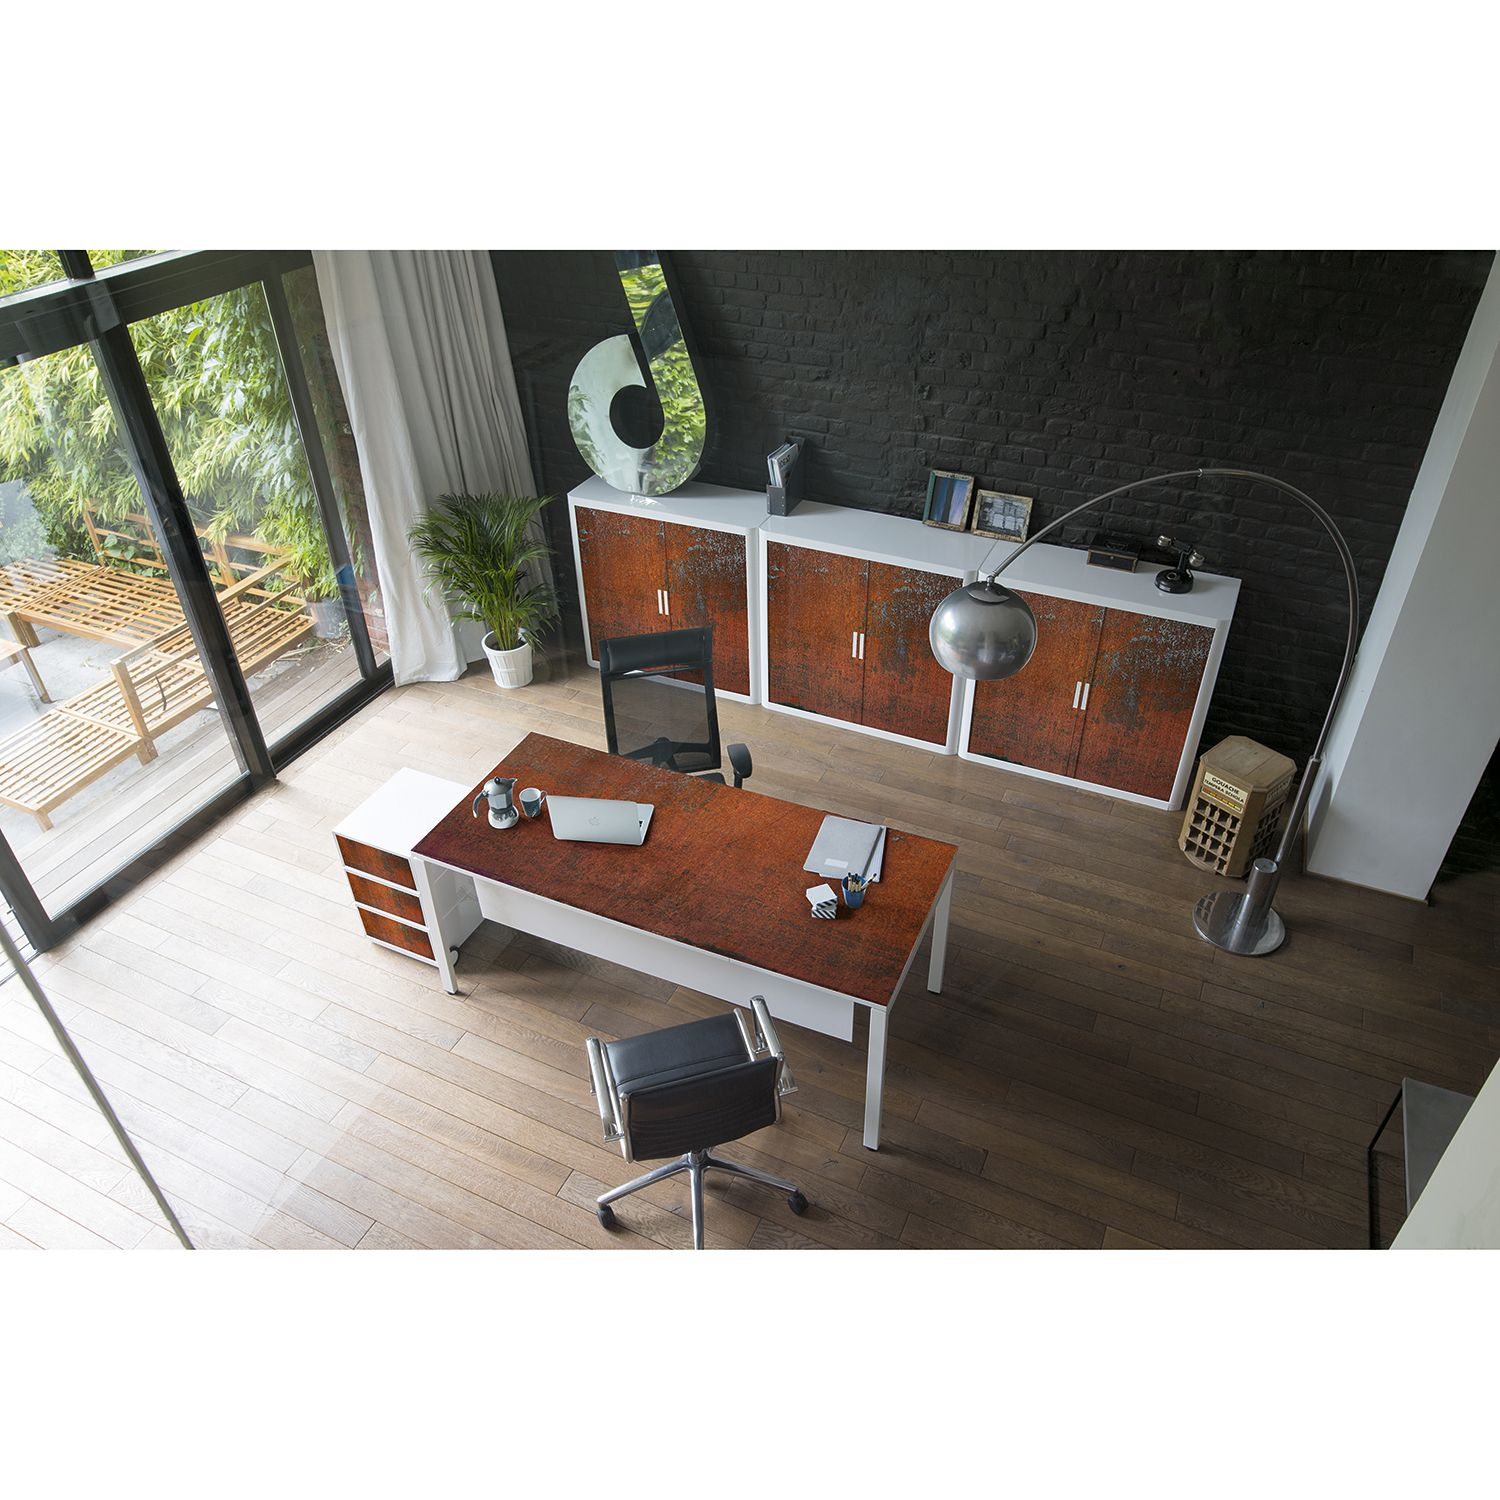 Bureau easyDesk Industrial I, easyOffice by Paperflow